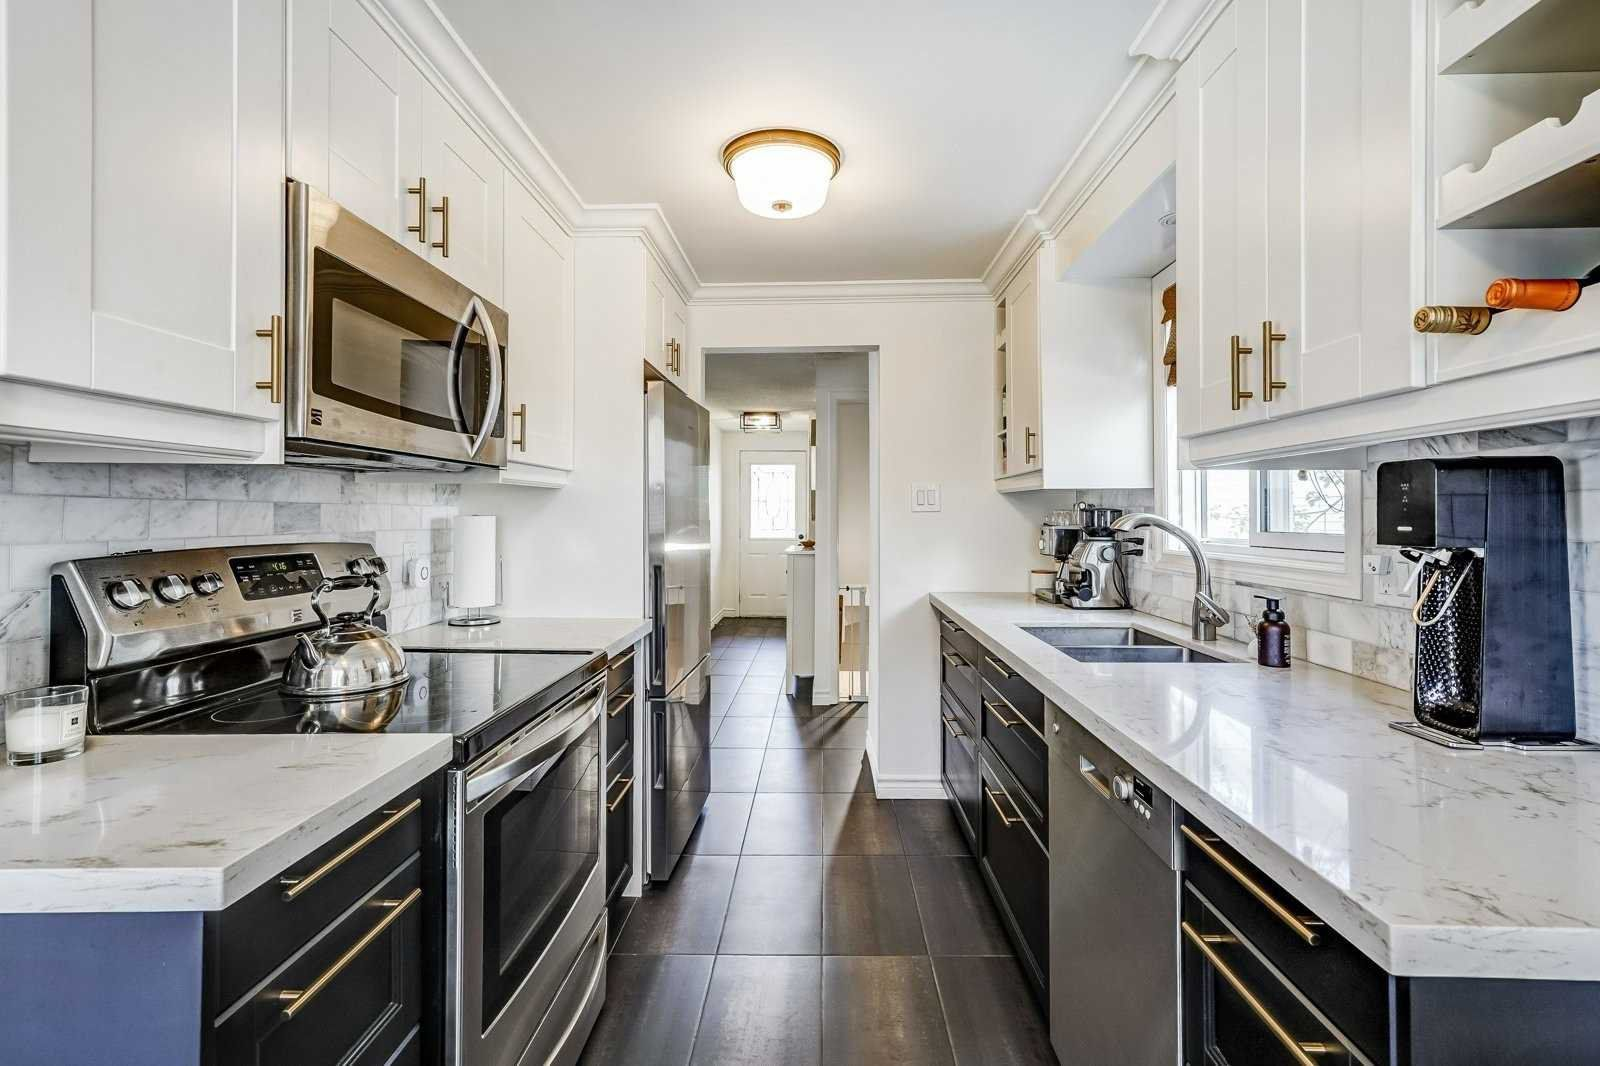 Main Photo: Hemingway Crescent in Barrie: Letitia Heights House Steven & Marie Commisso Vaughan Real Estate Vaughan Condos